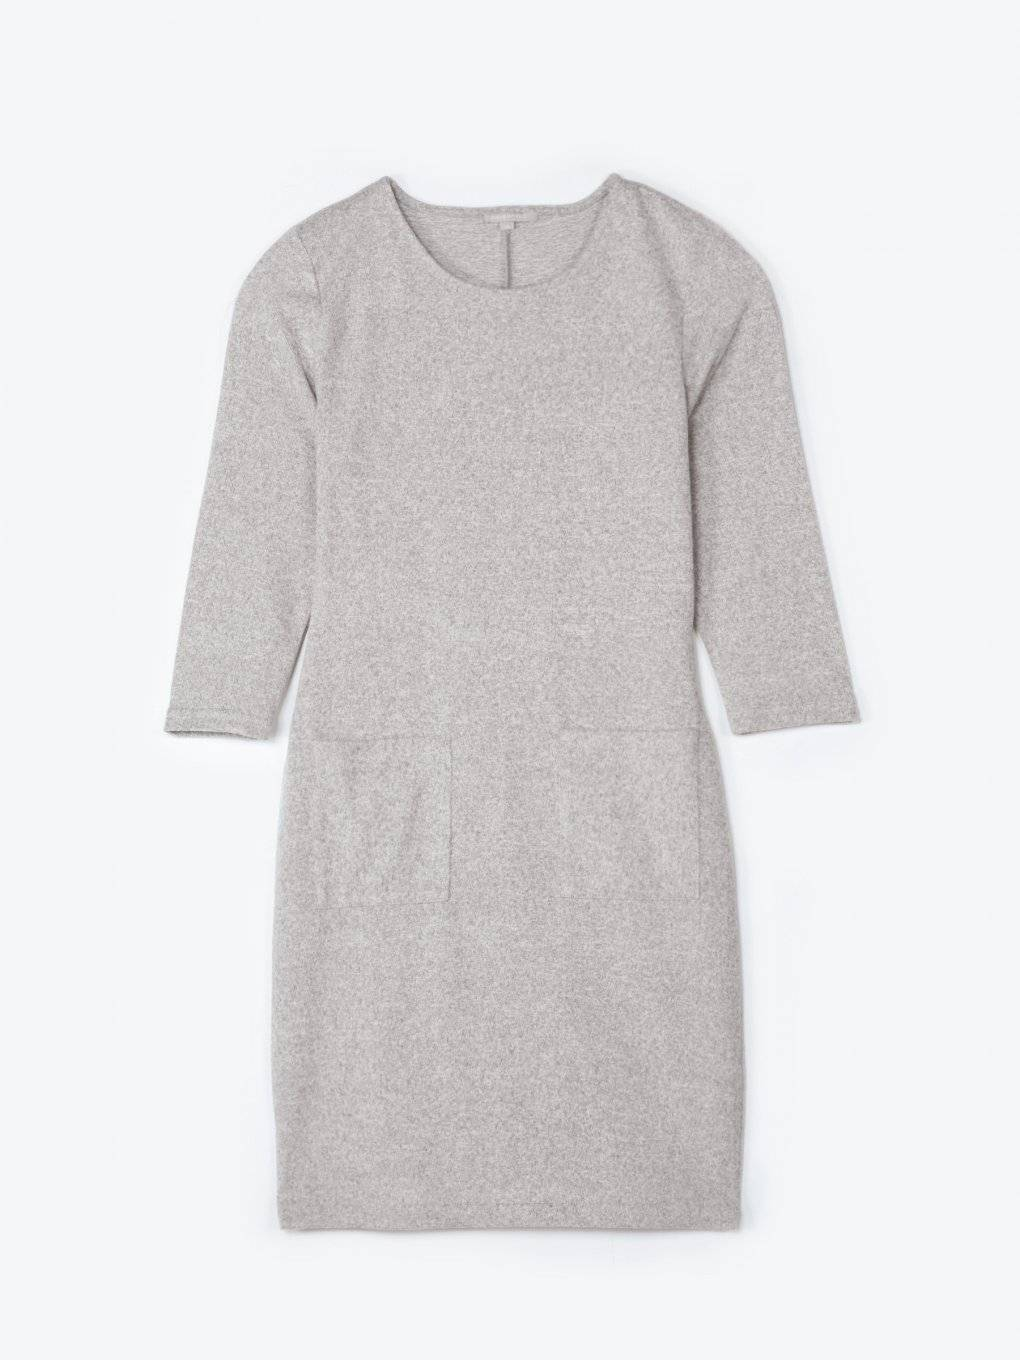 Knit dress with patch pockets